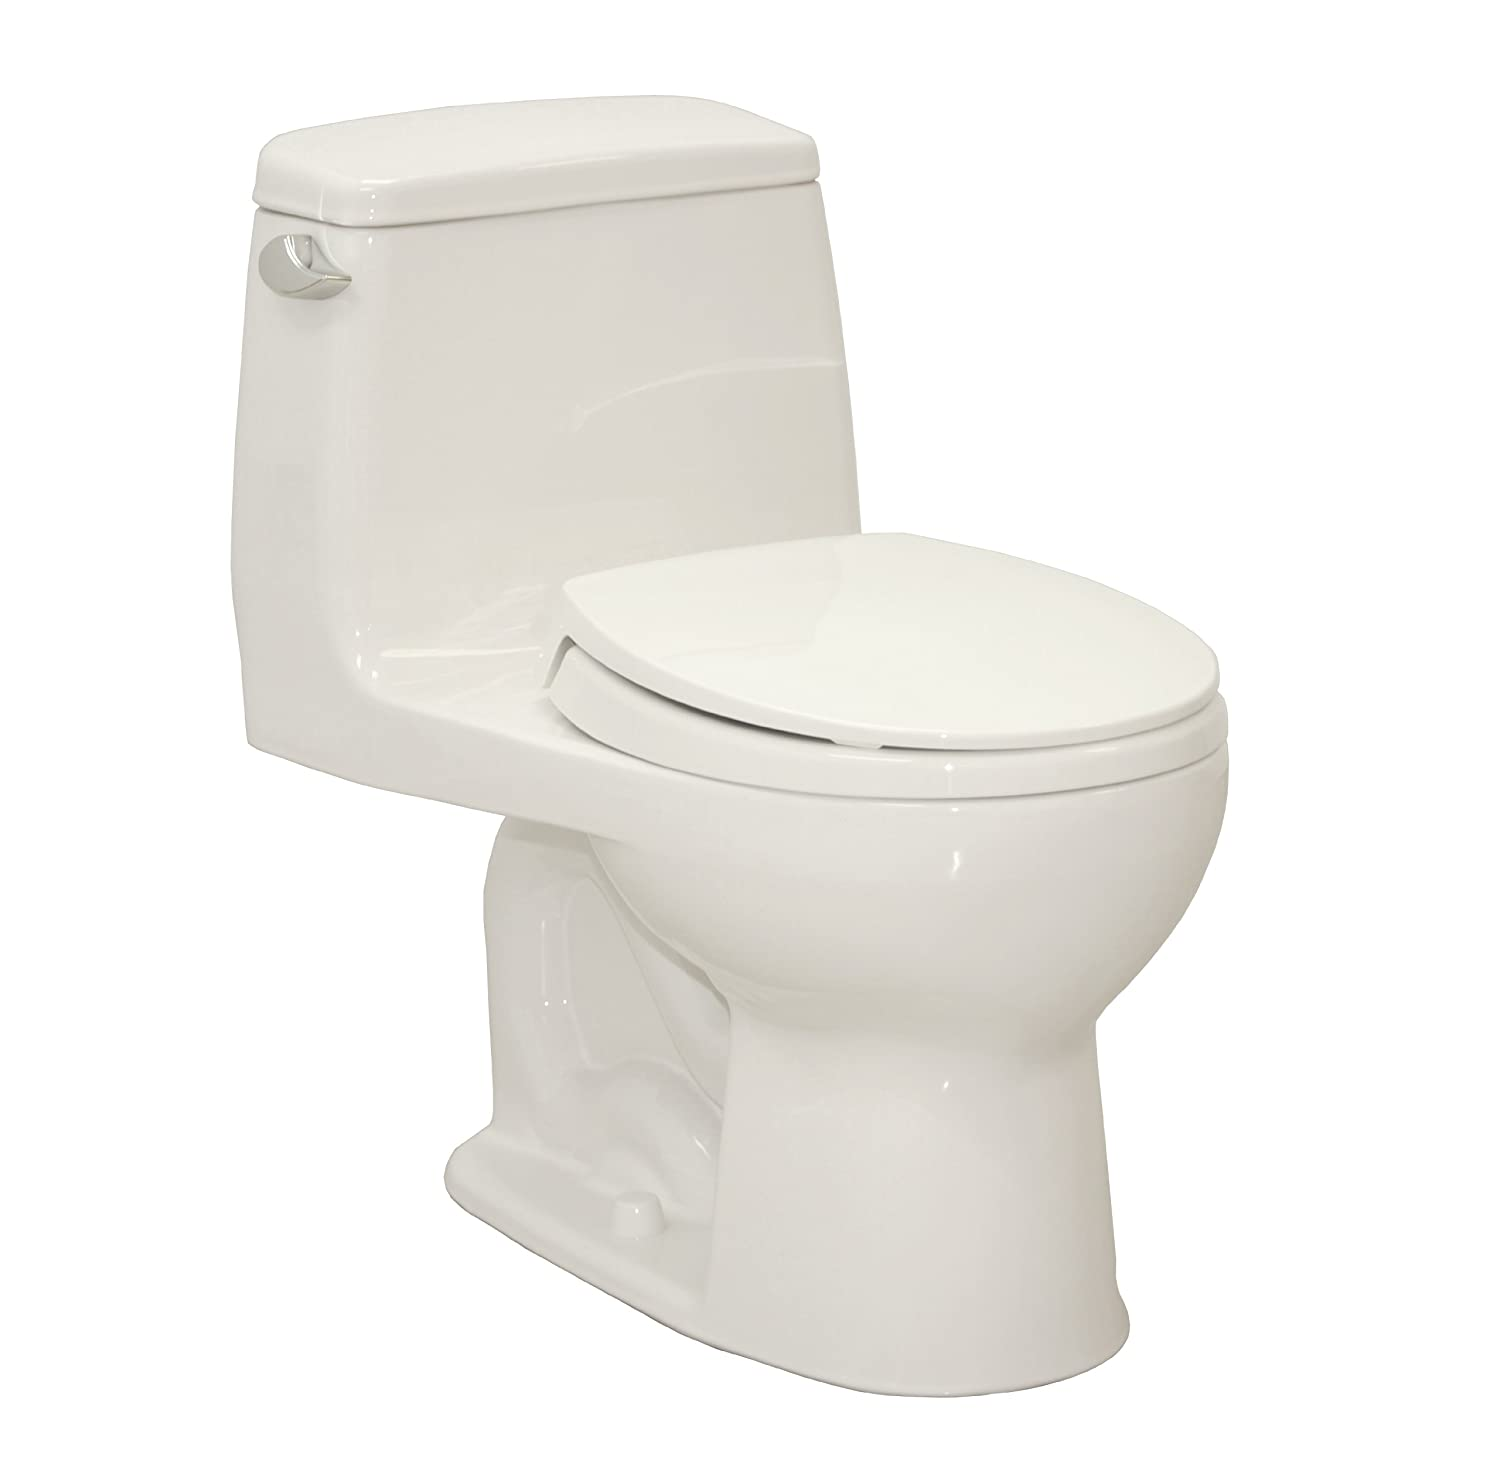 Very Compact Round Front Toilet For Small Bathroom